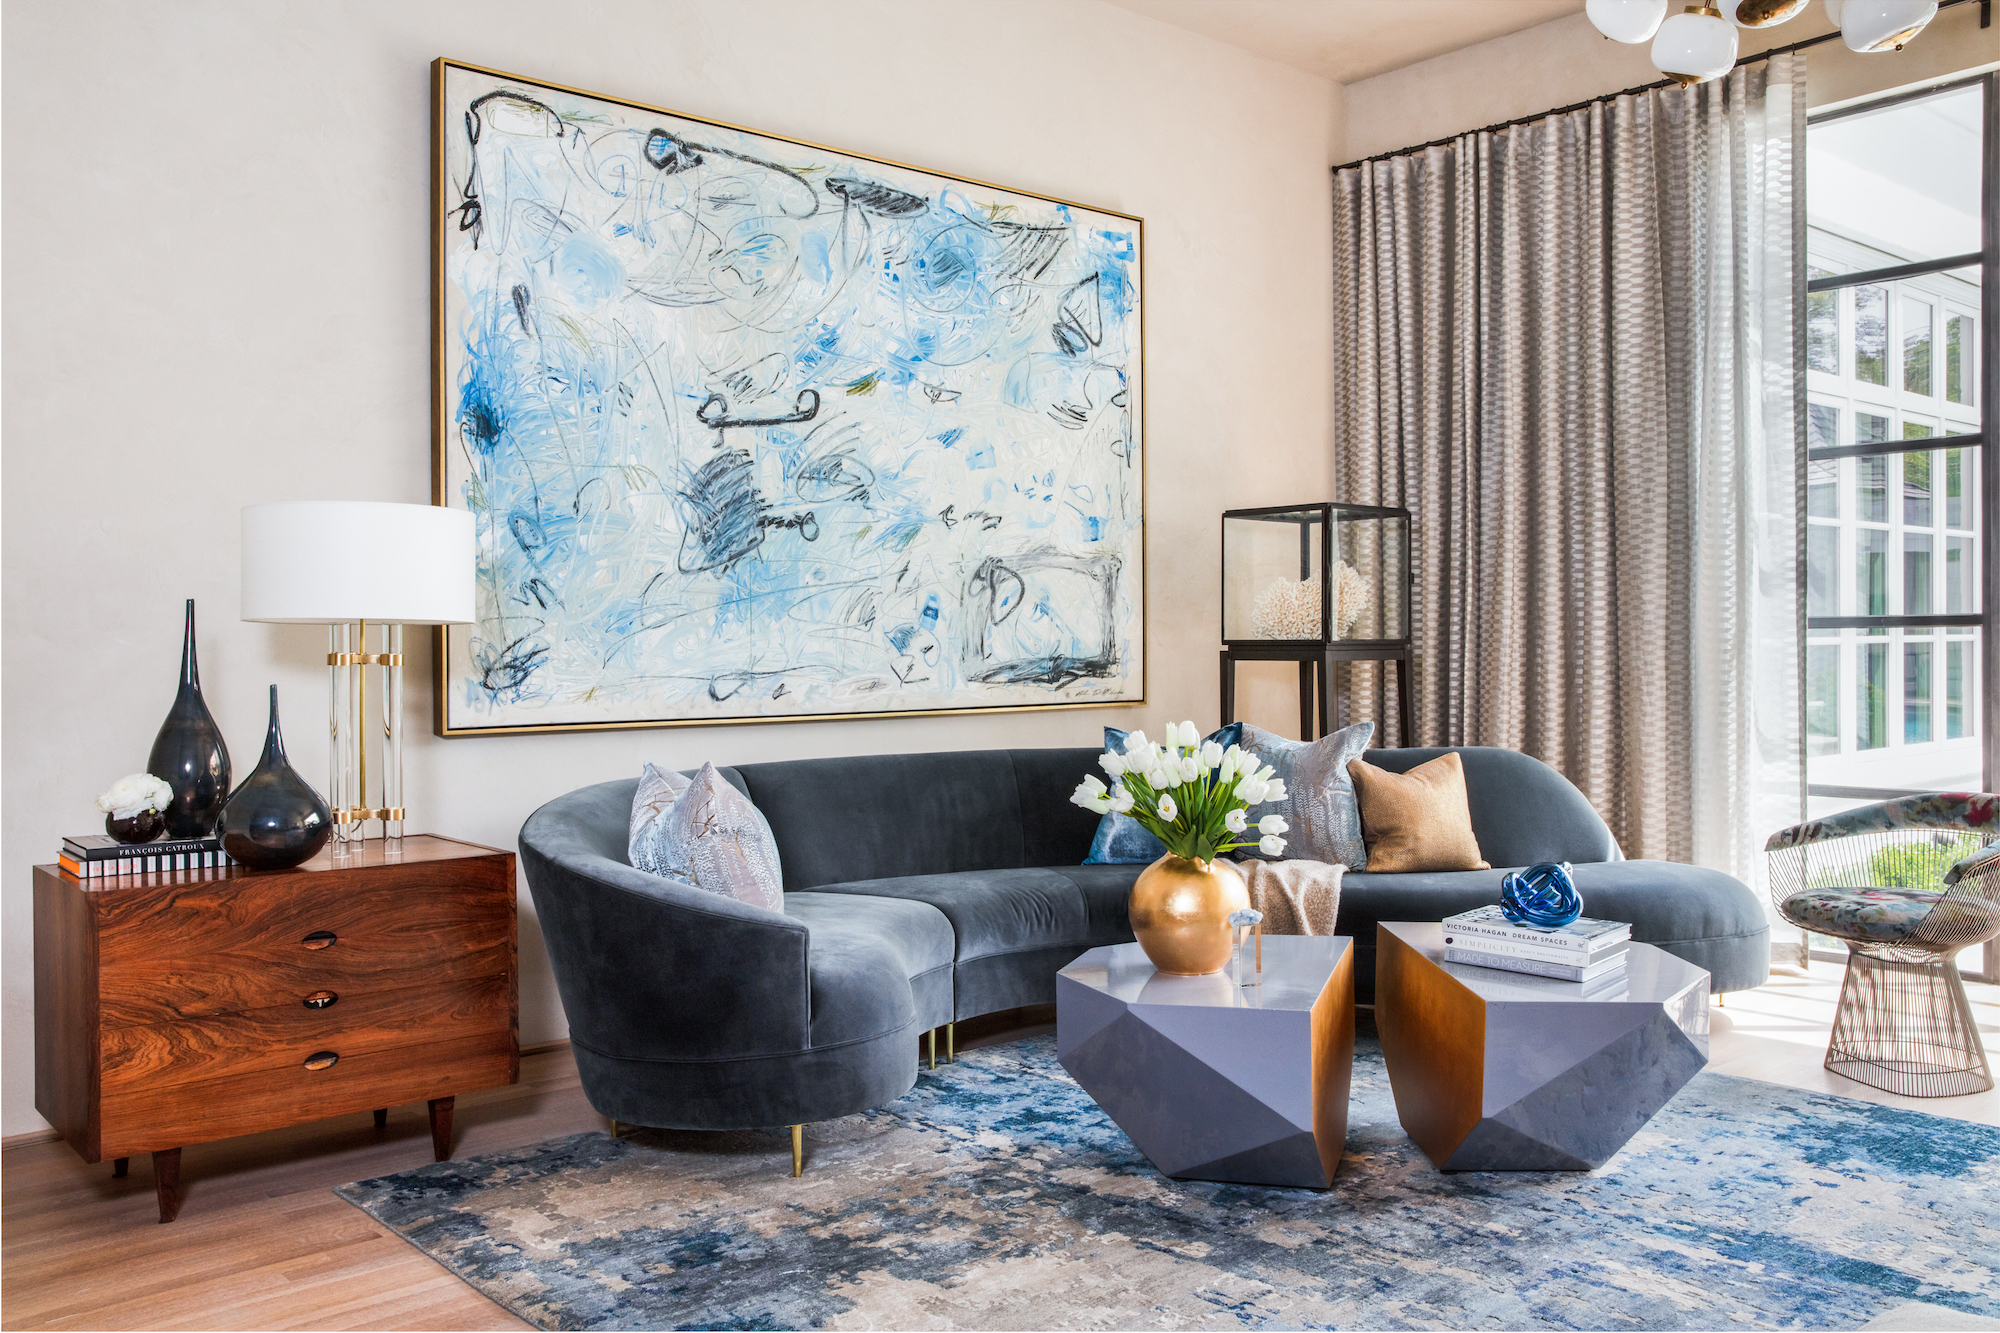 modern artwork and accessories-interior design firm Carlton Edwards